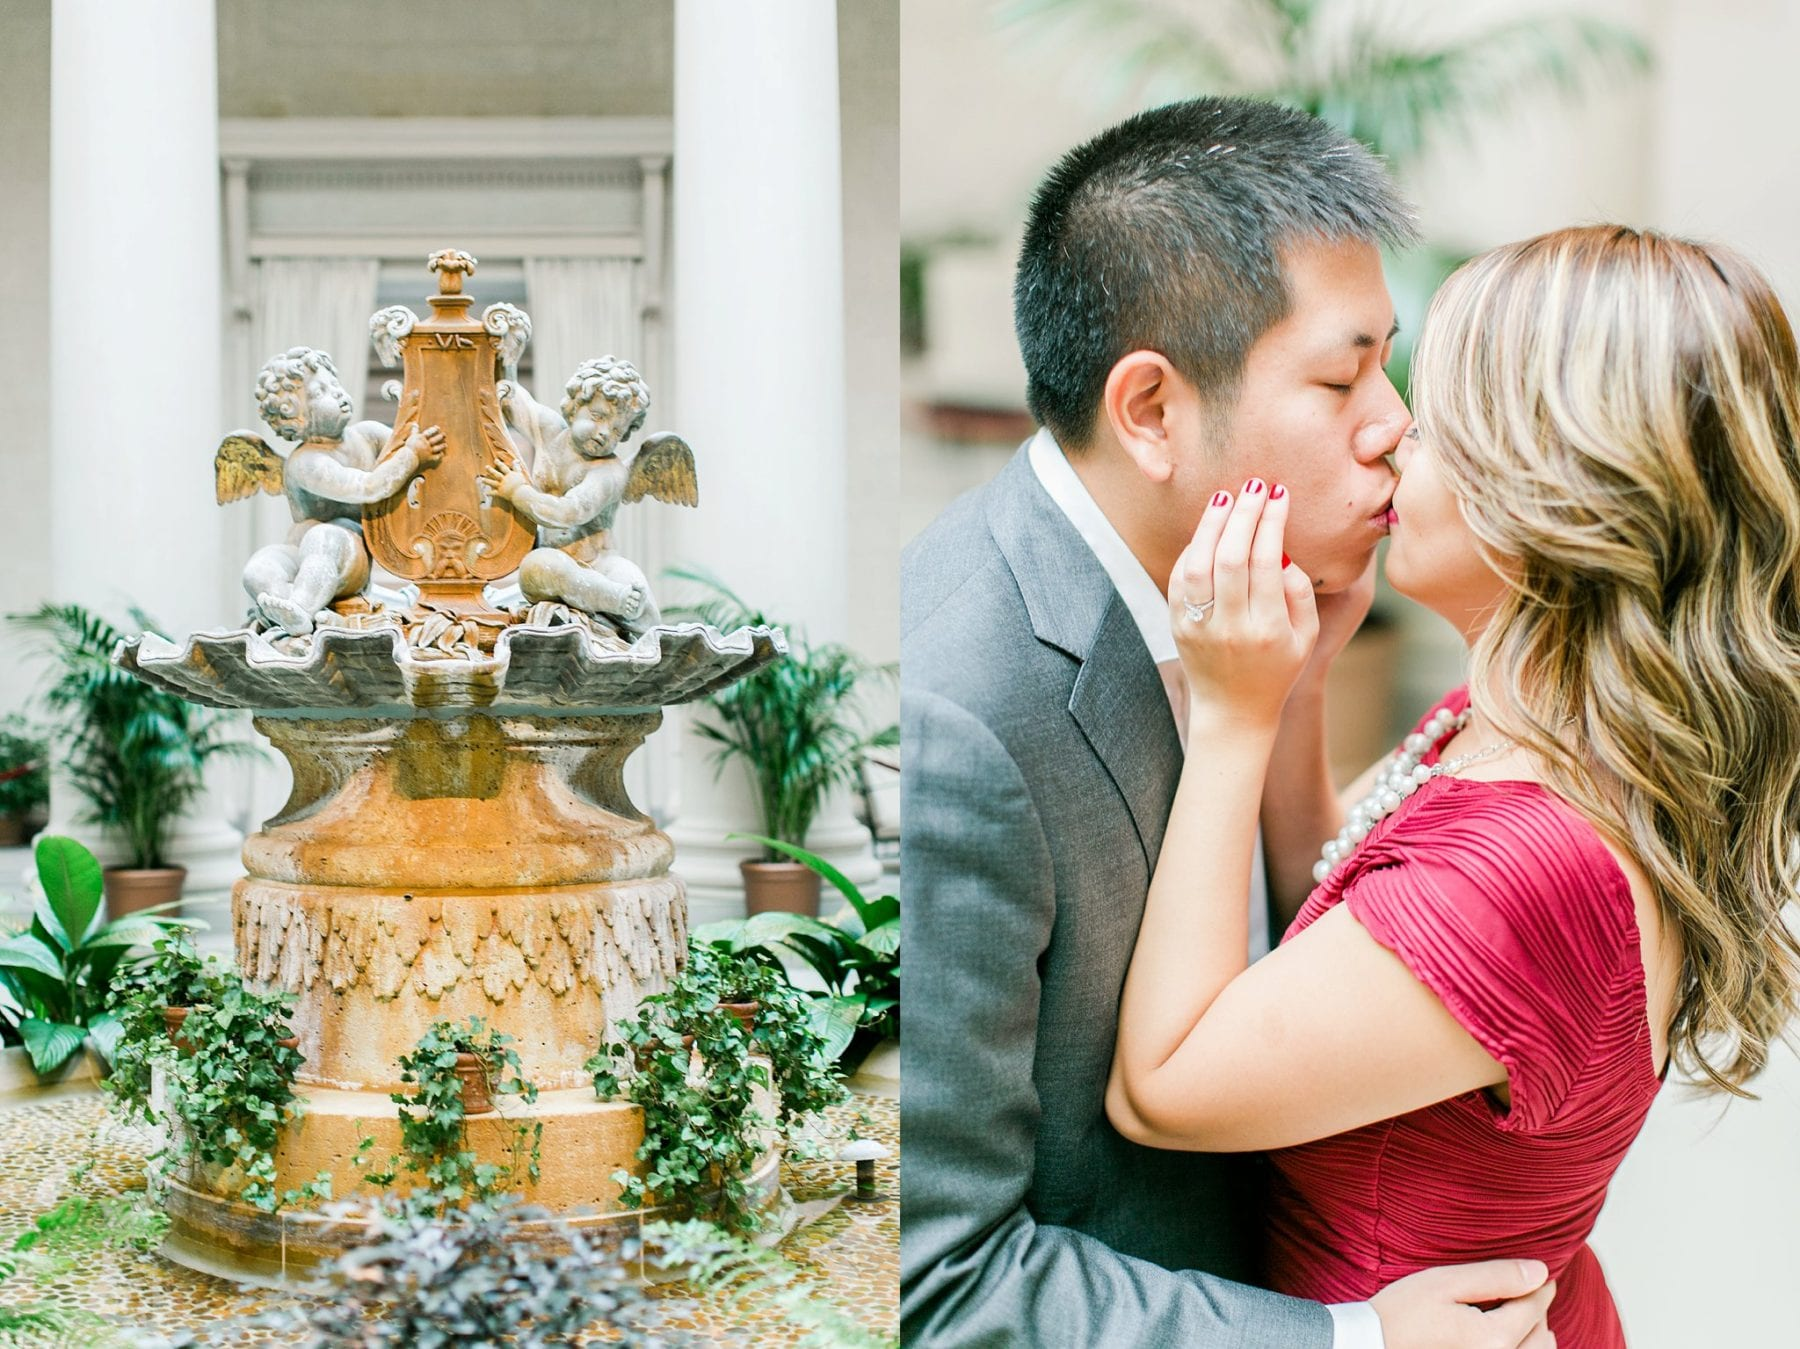 National Gallery of Art Engagement Photos Megan Kelsey Photography Washington DC Wedding Photographer Sy-yu & Anthony-126.jpg